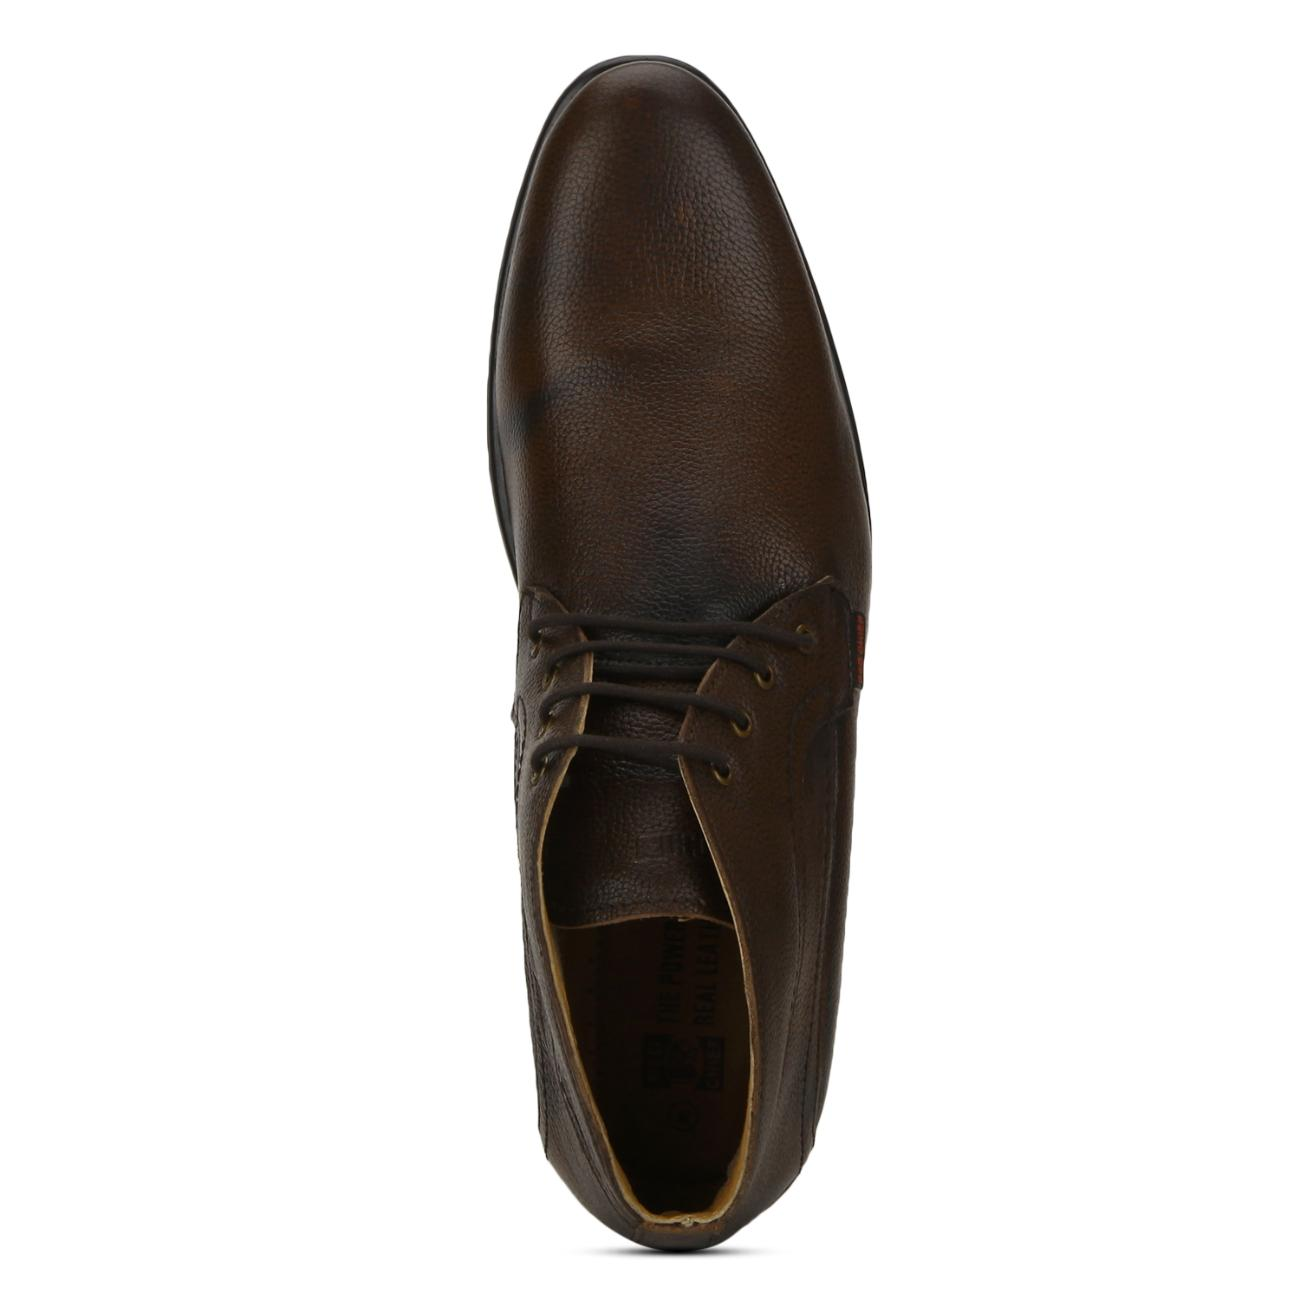 brown leather lace up formal shoes top view